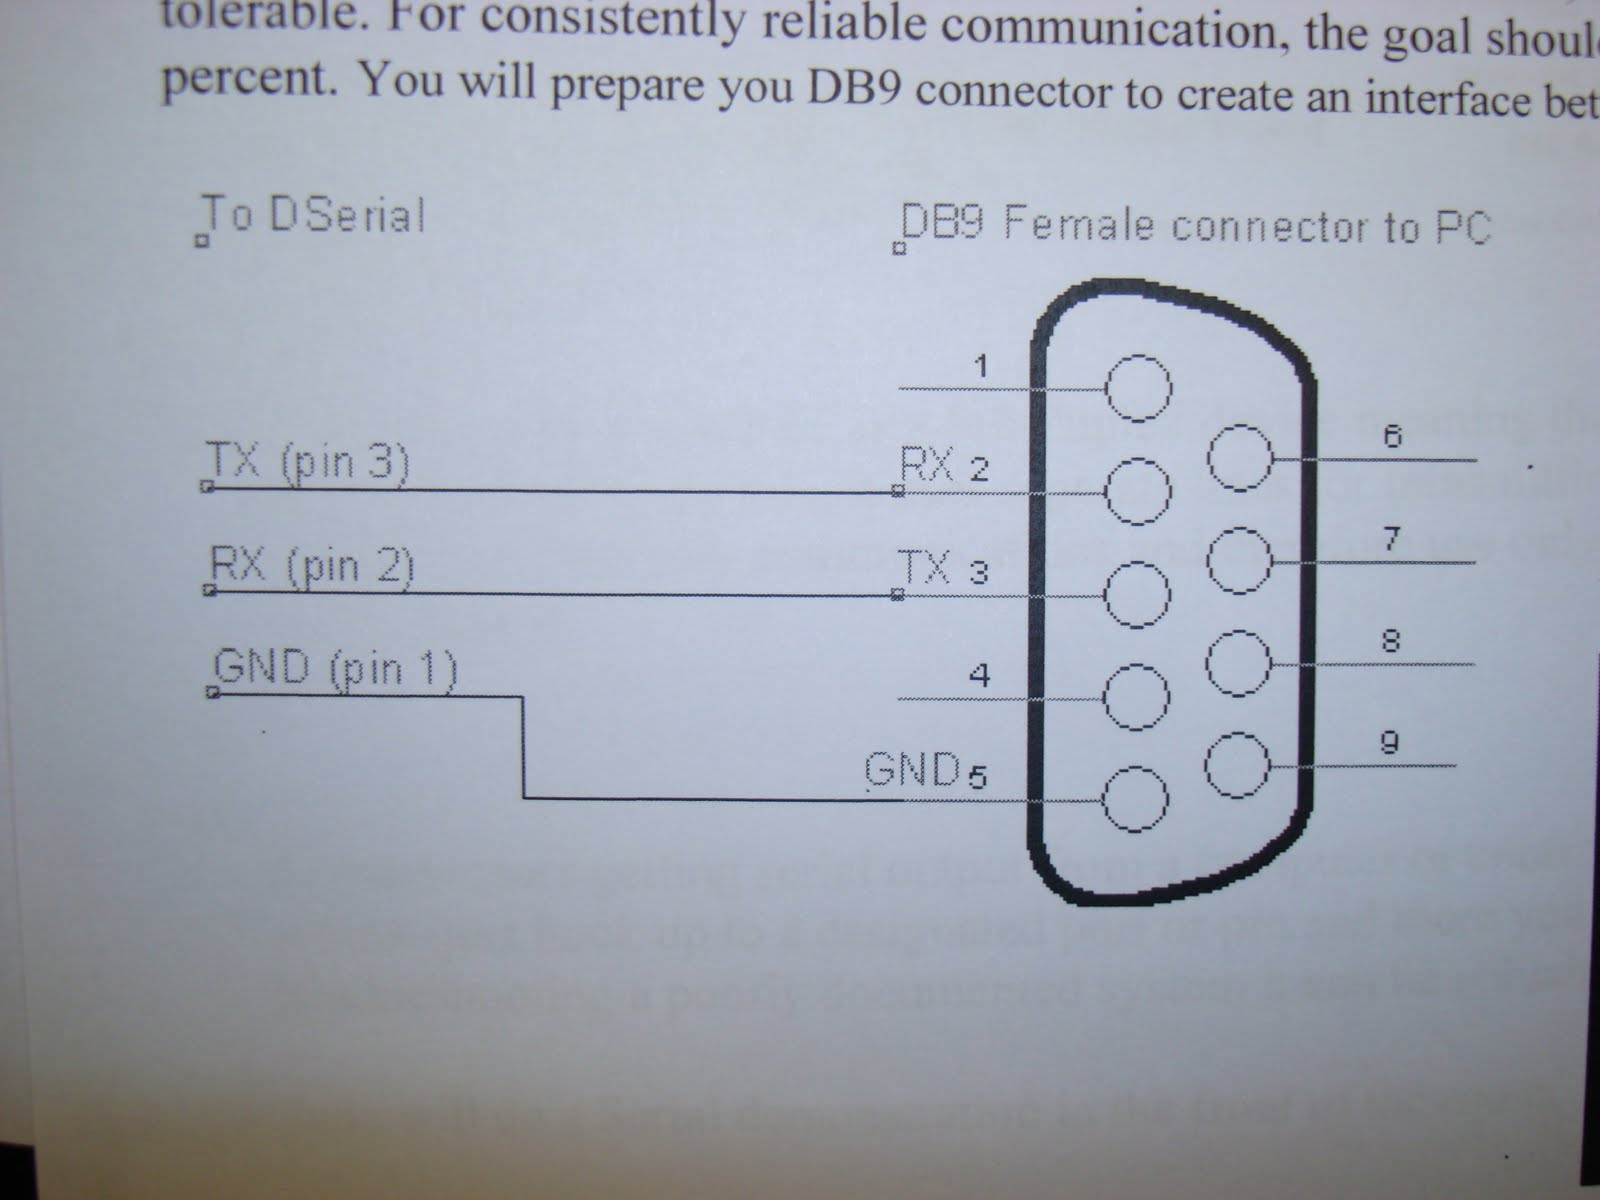 Female Usb Wiring Diagram | Wiring Diagram - Usb Female Wiring Diagram